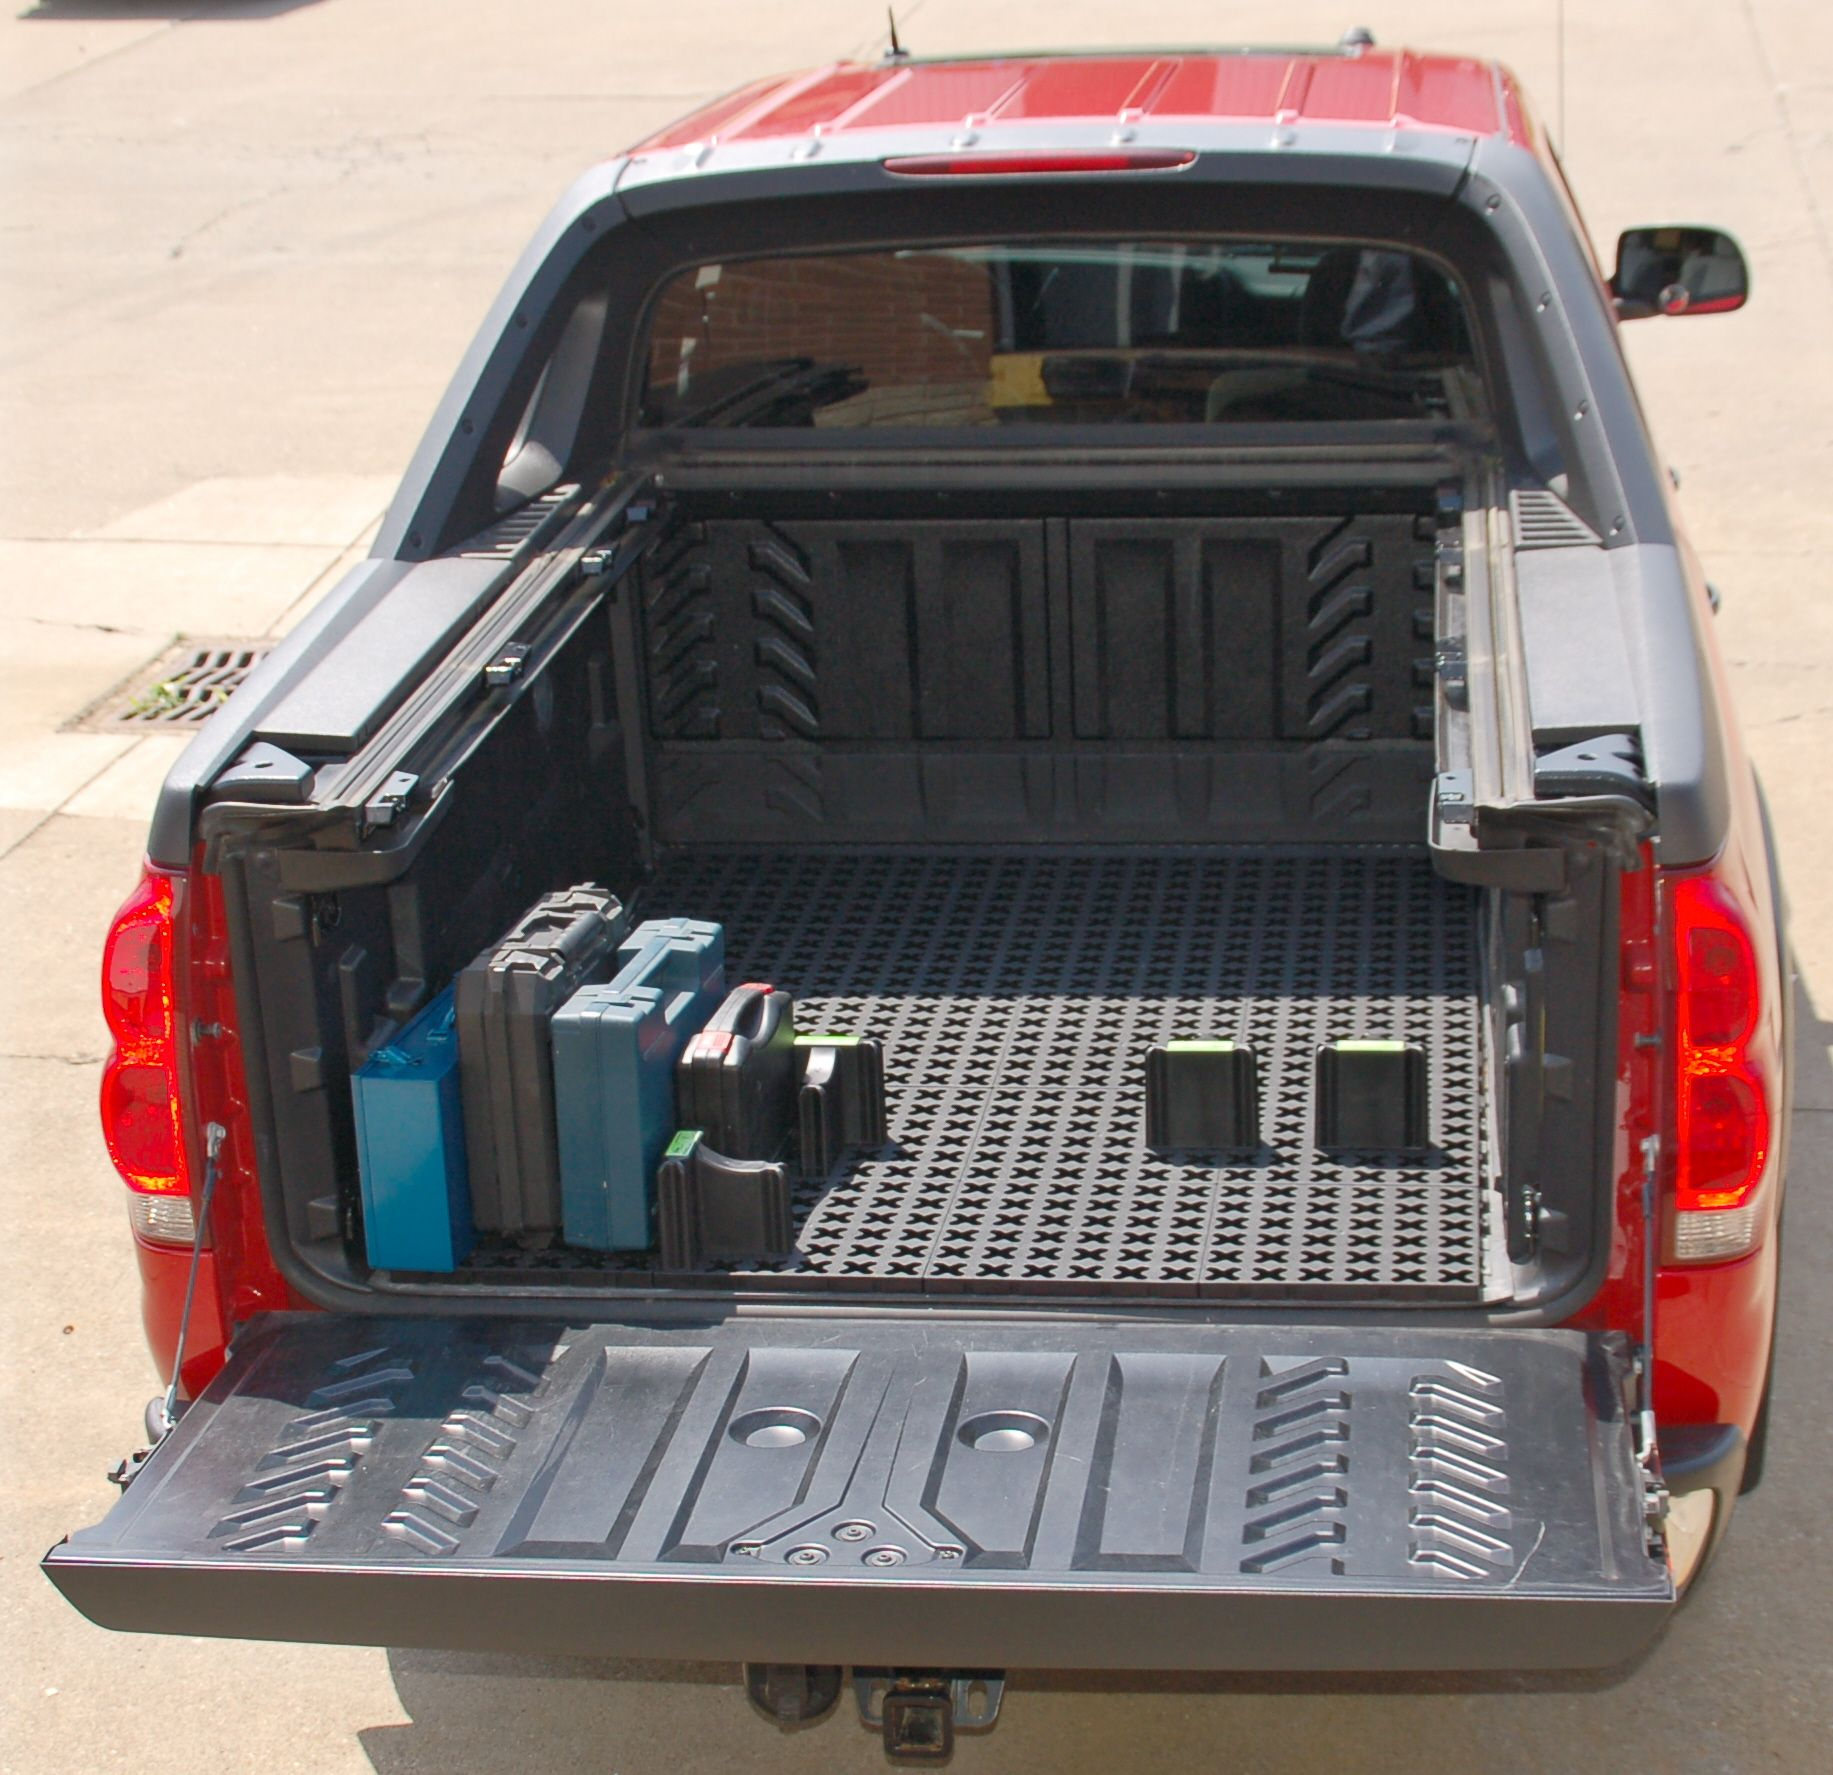 Cargo for truck bed. Truck bed, Radio